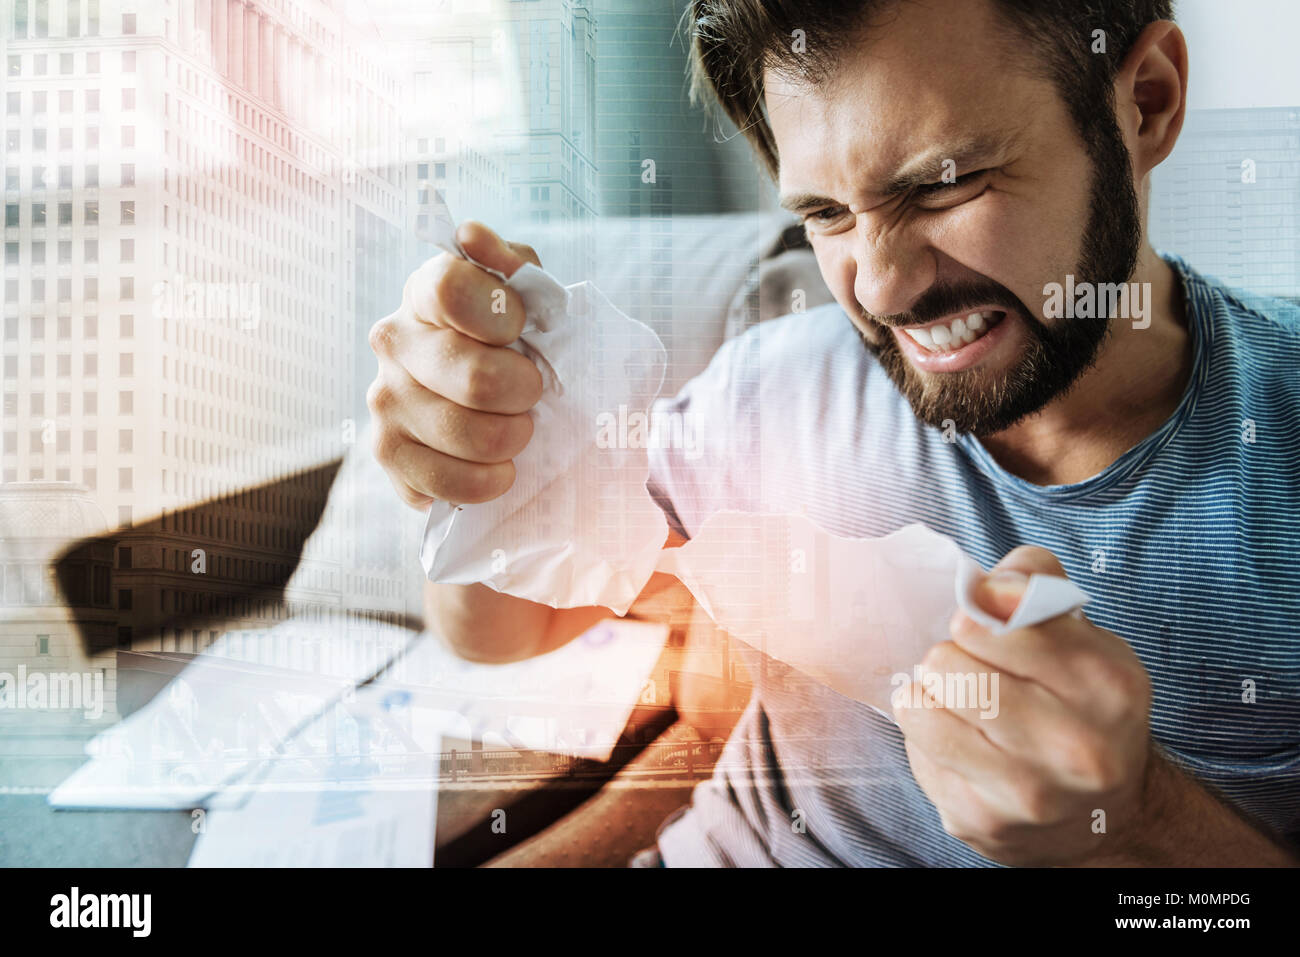 Angry stressful man tearing the paper and merging. - Stock Image